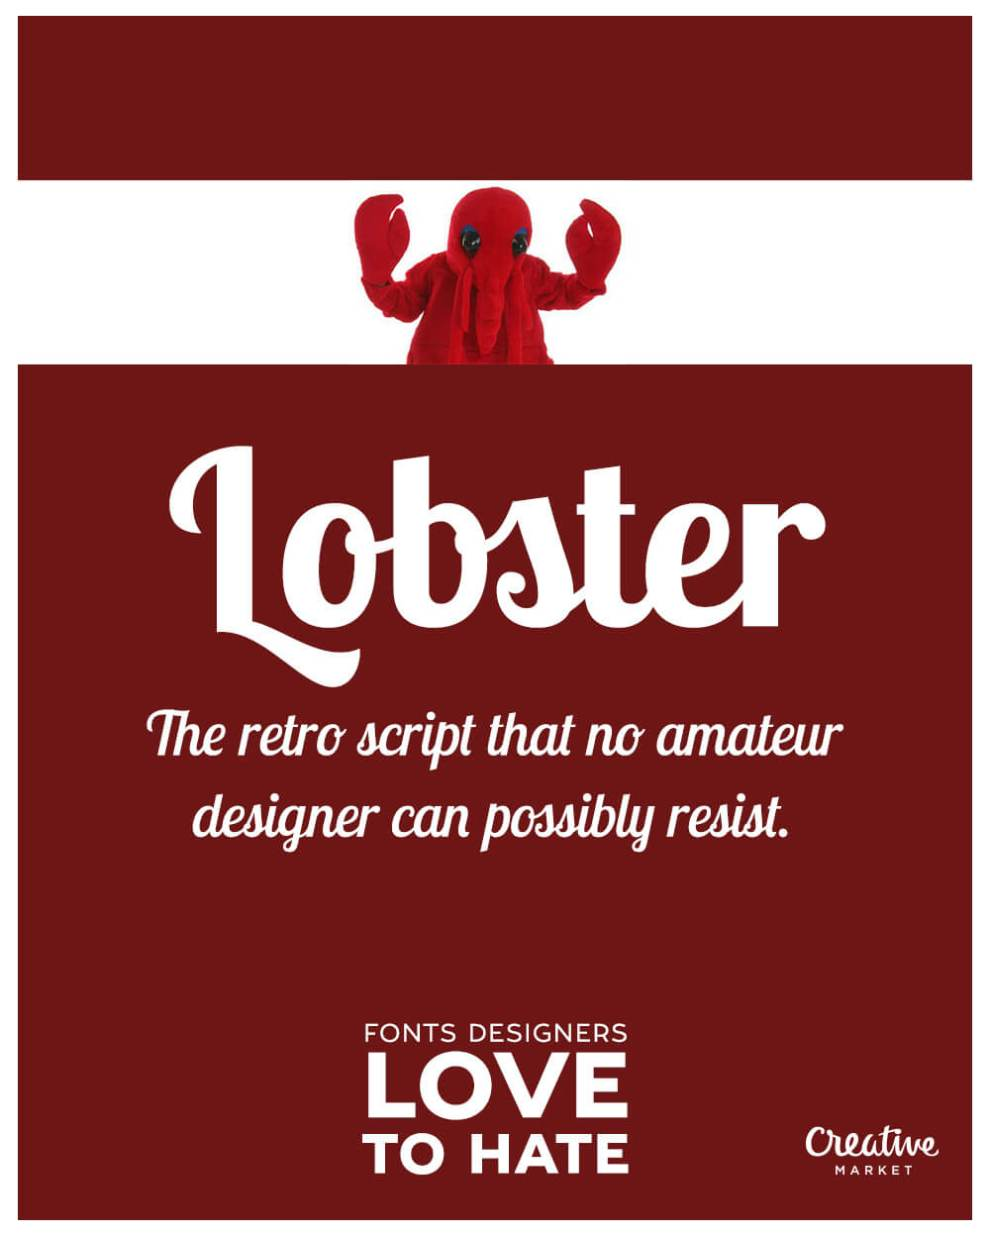 10 fonts designers love to hate: Lobster